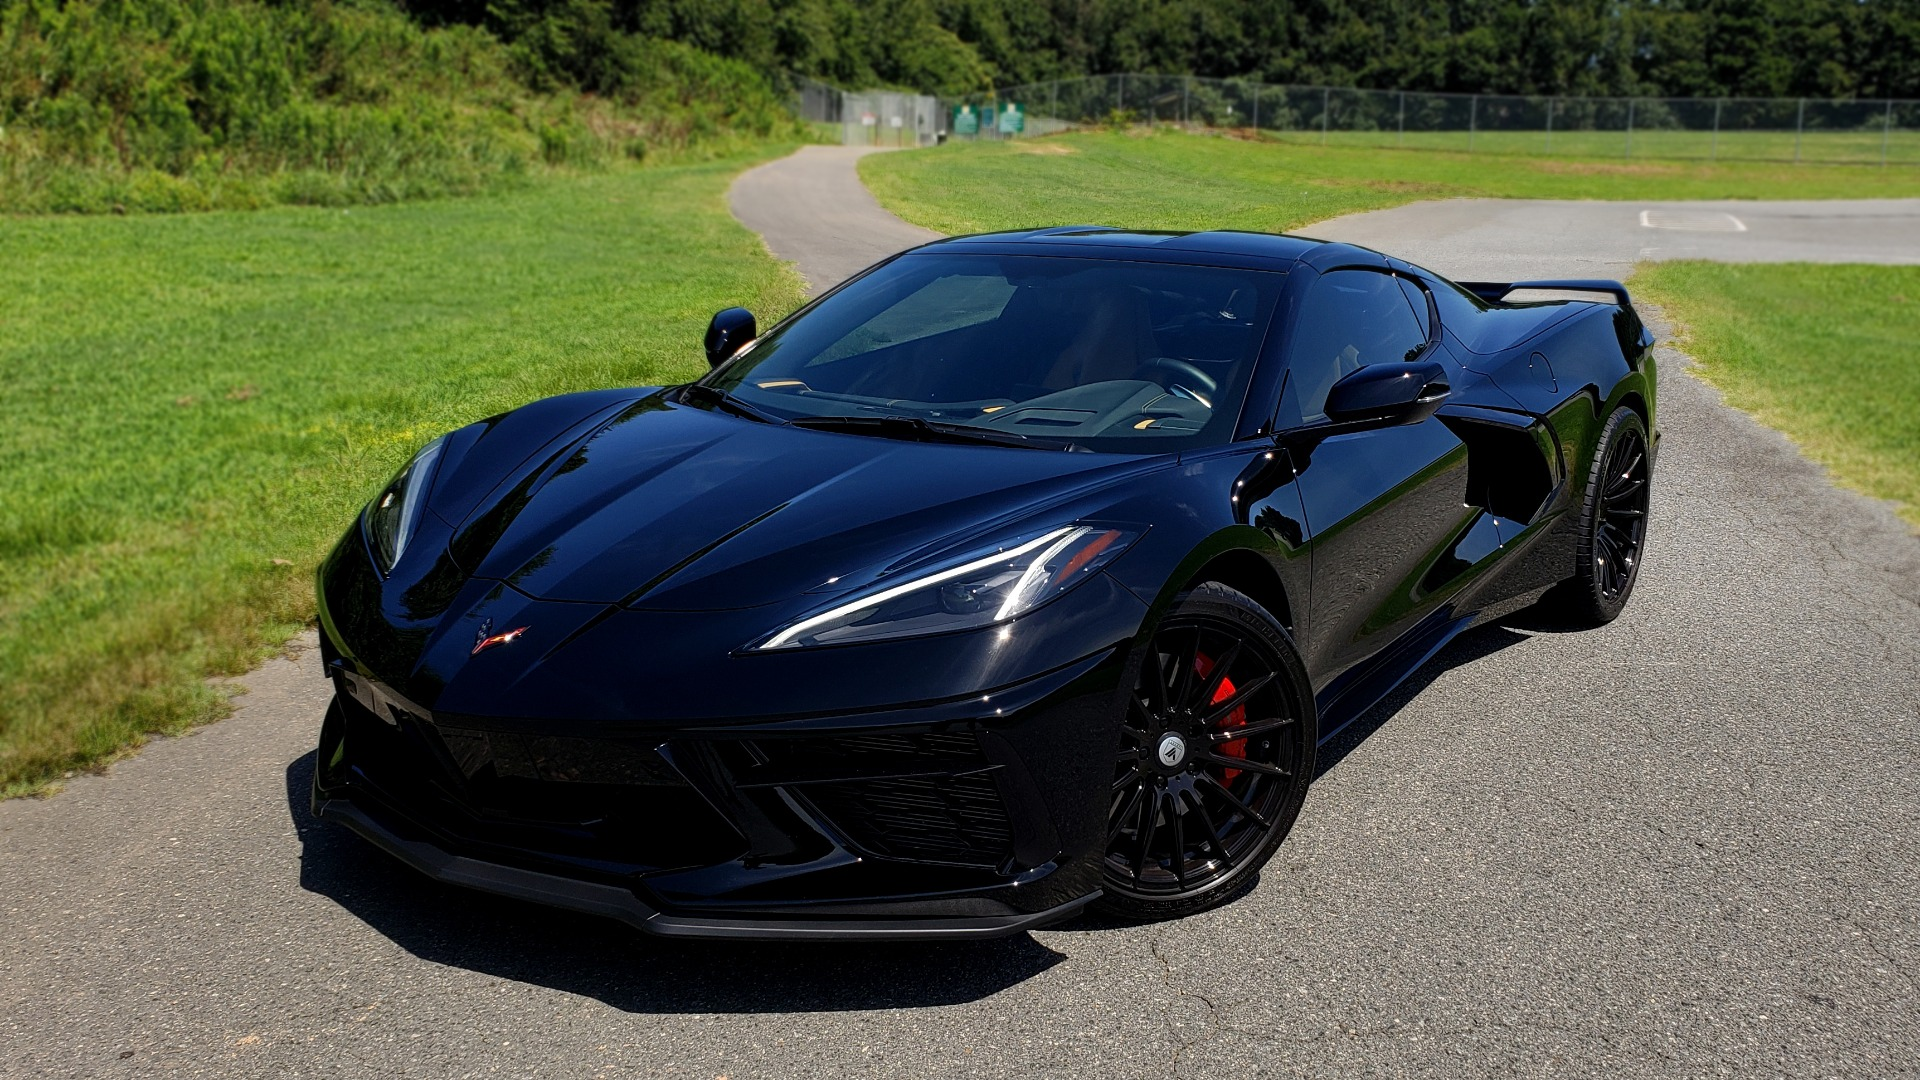 Used 2020 Chevrolet Corvette 2LT for sale Sold at Formula Imports in Charlotte NC 28227 2